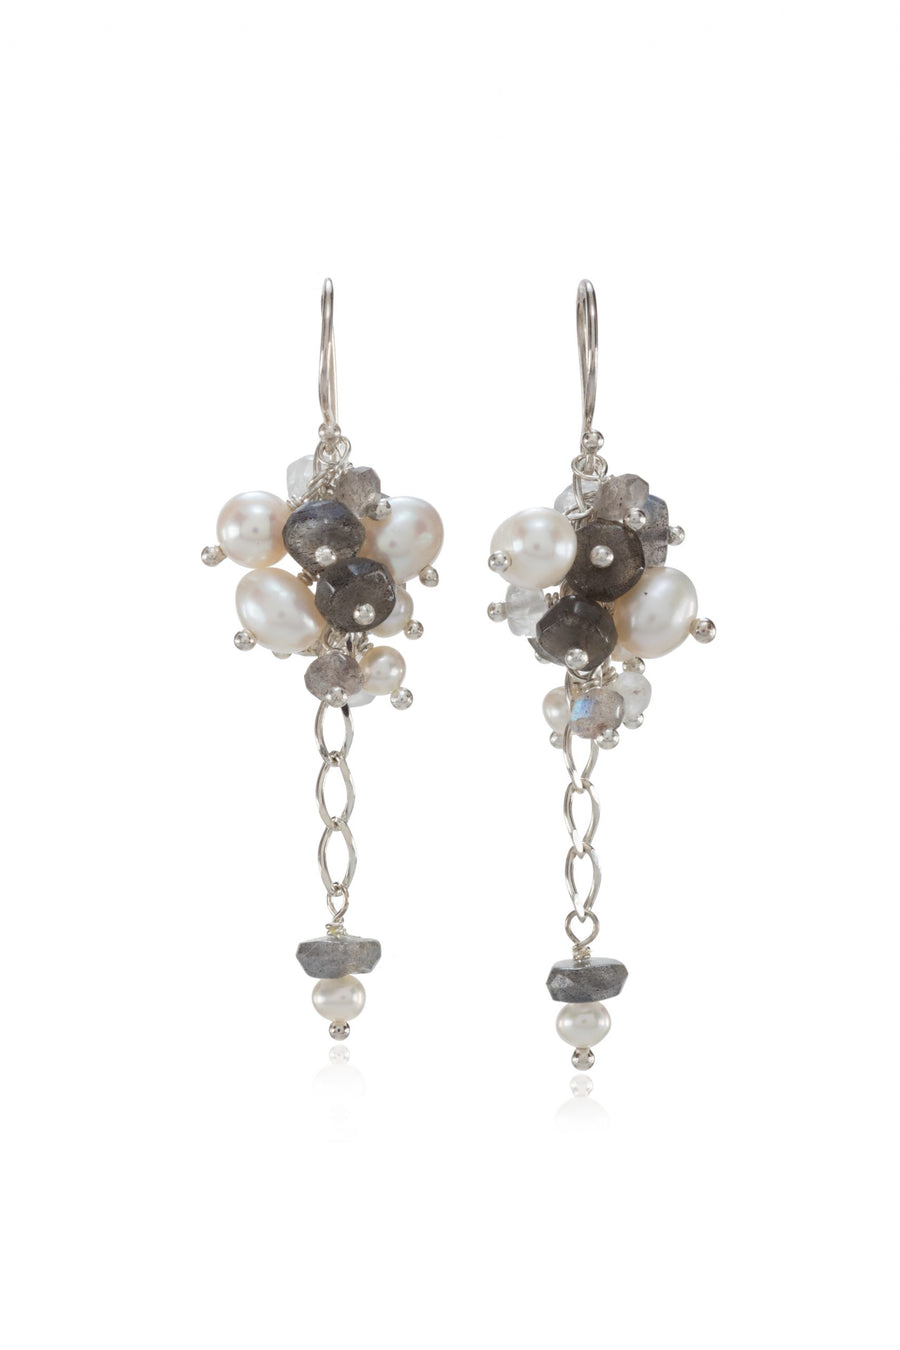 Sterling Silver Labradorite Cluster Mix Earrings (3176-LAB)